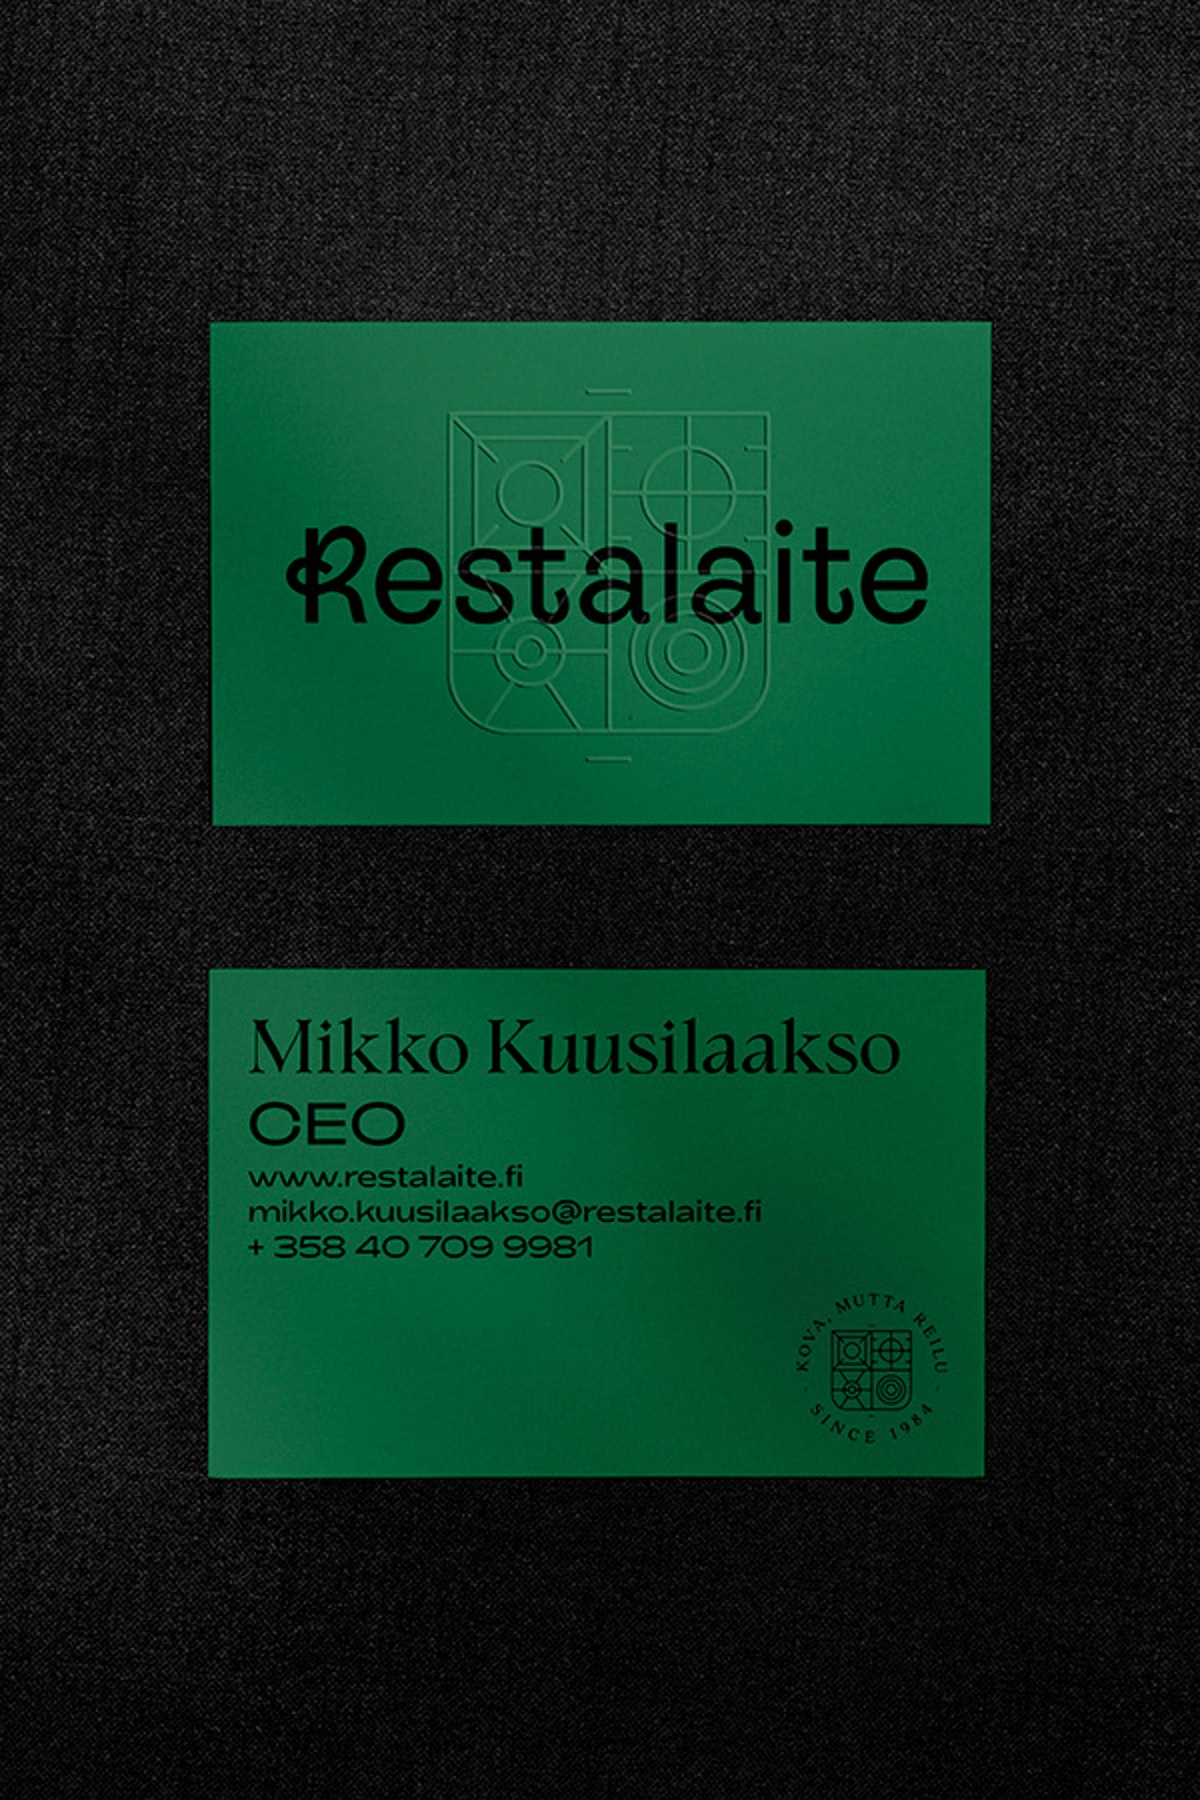 Restalaite business cards.